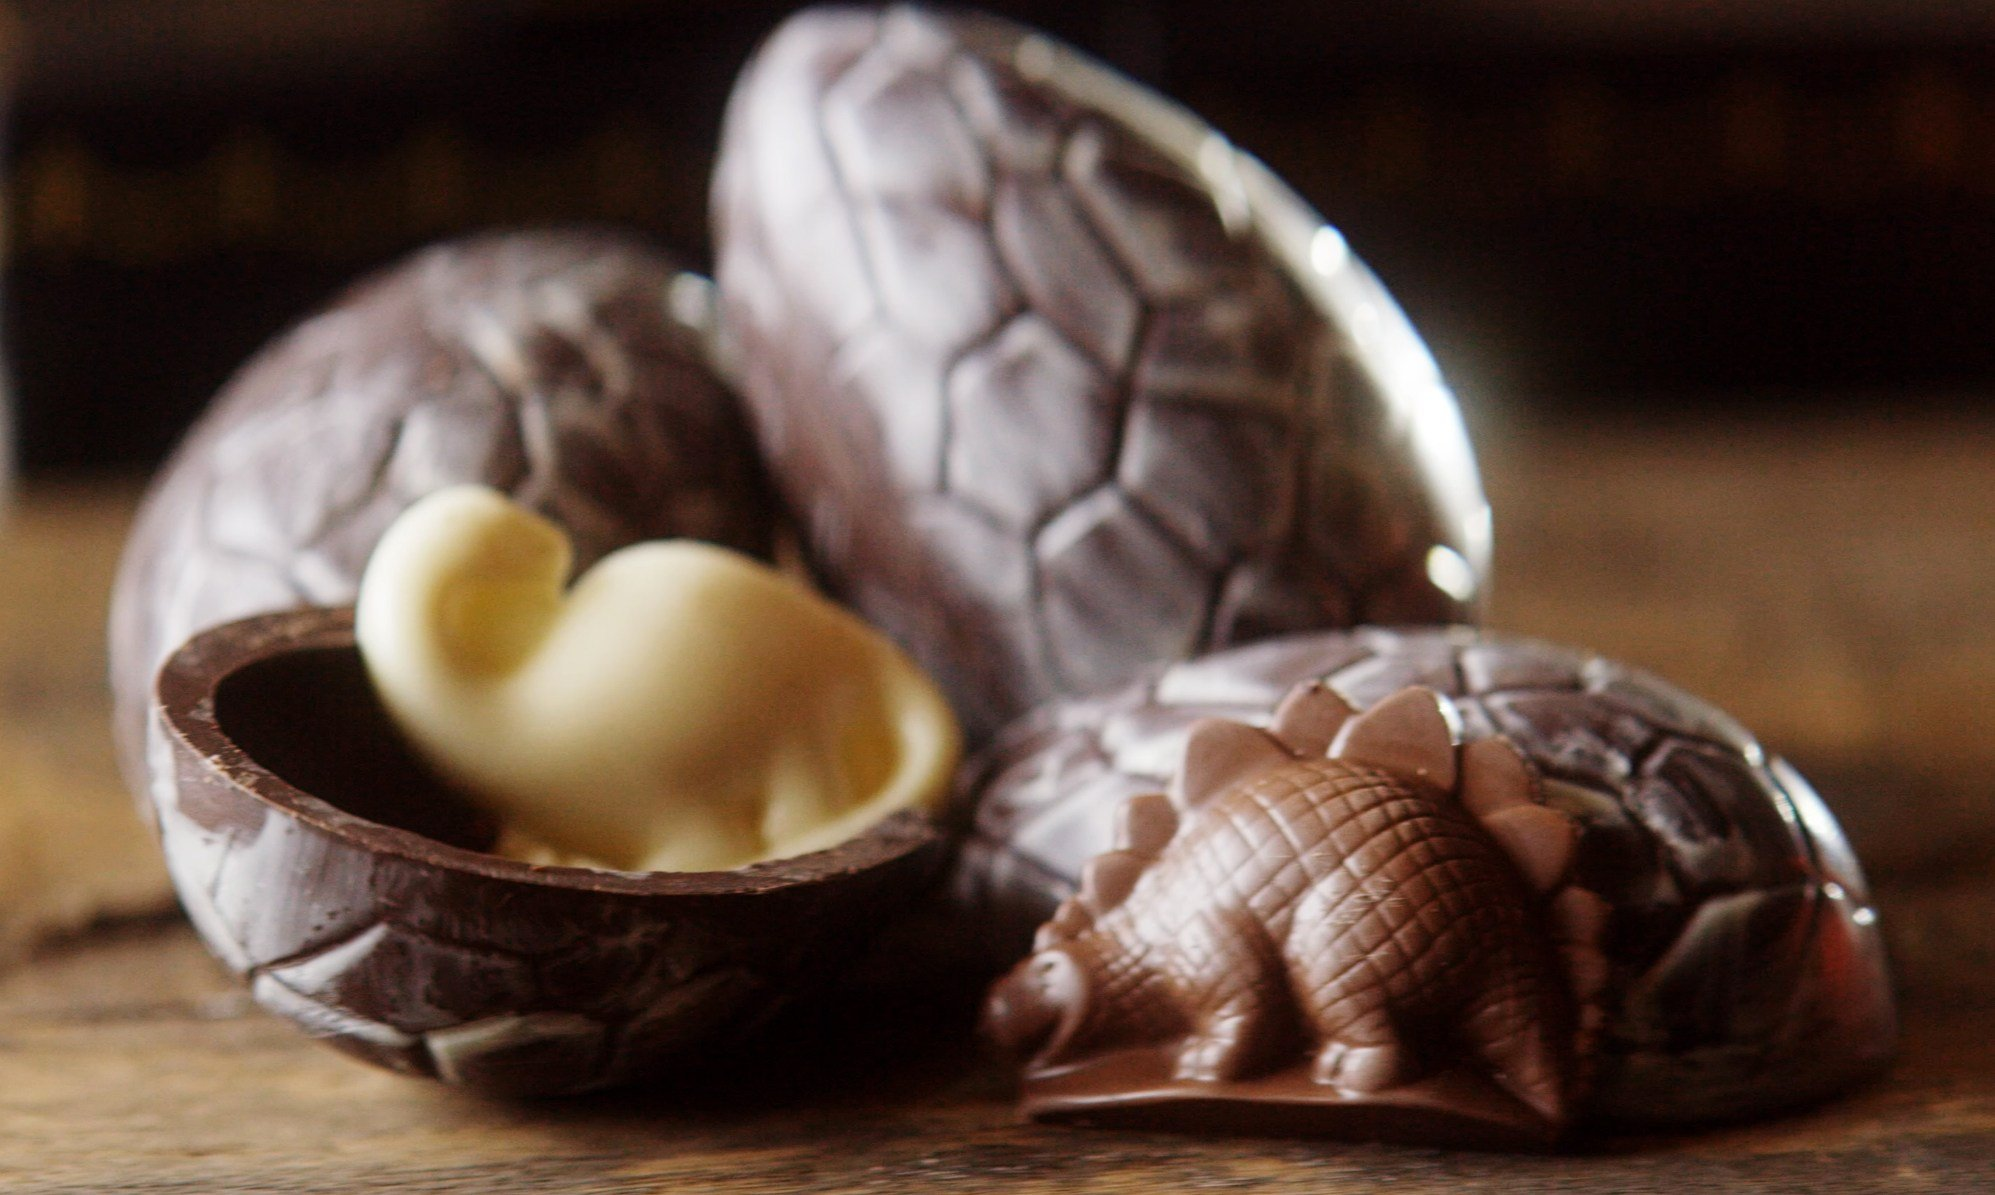 Chocolate dinosaur eggs crafted by La Chatelaine Chocolat Co. in Bozeman.